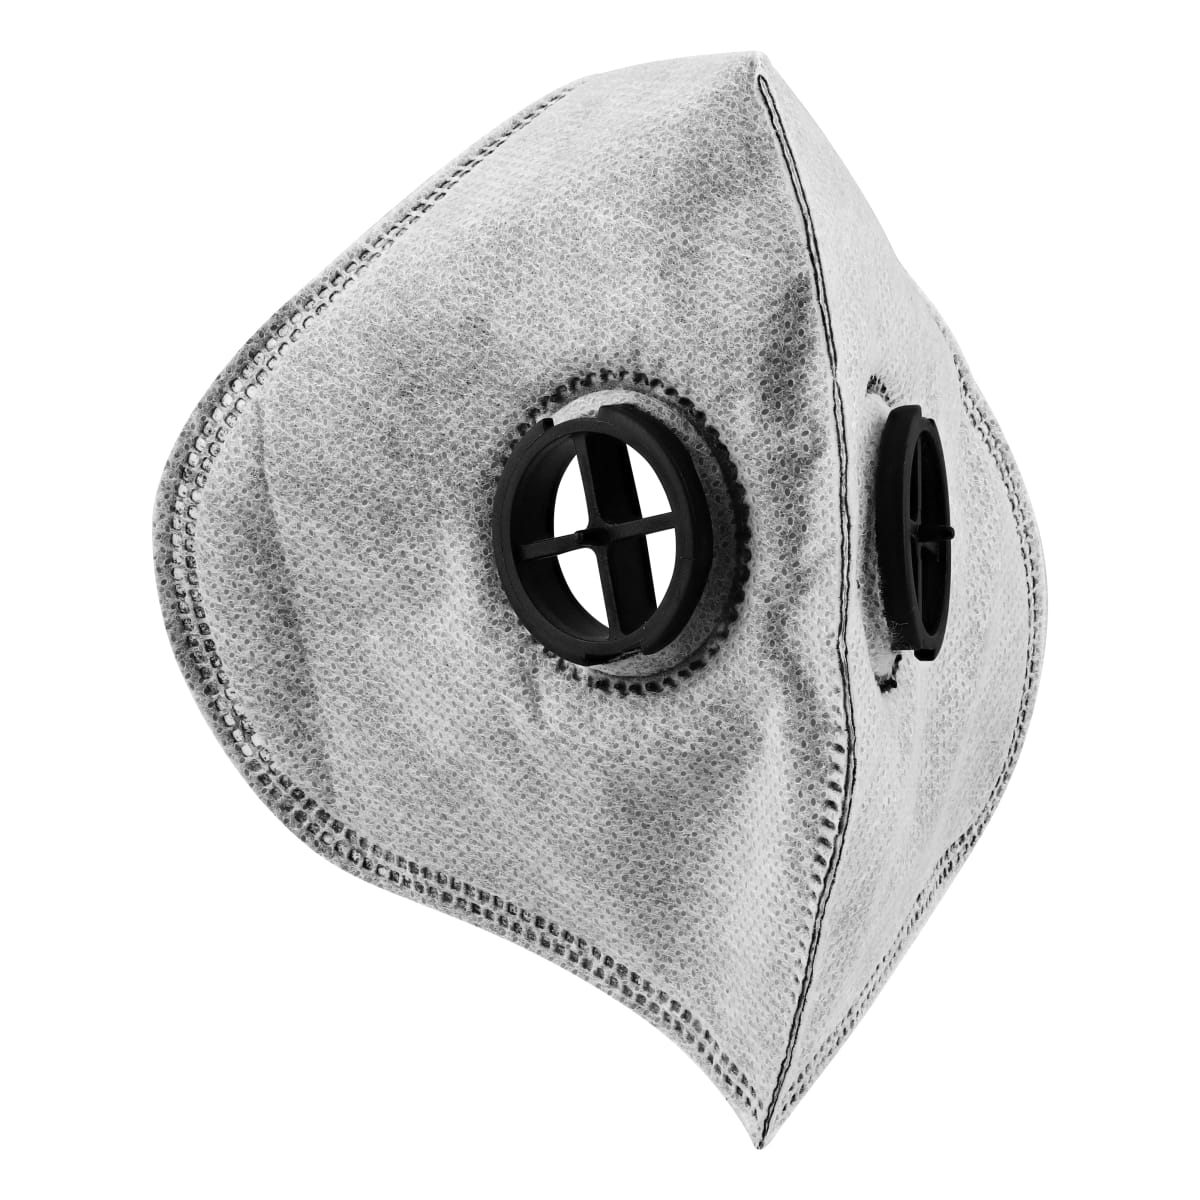 Pack of 3 filters for anti-pollution mask